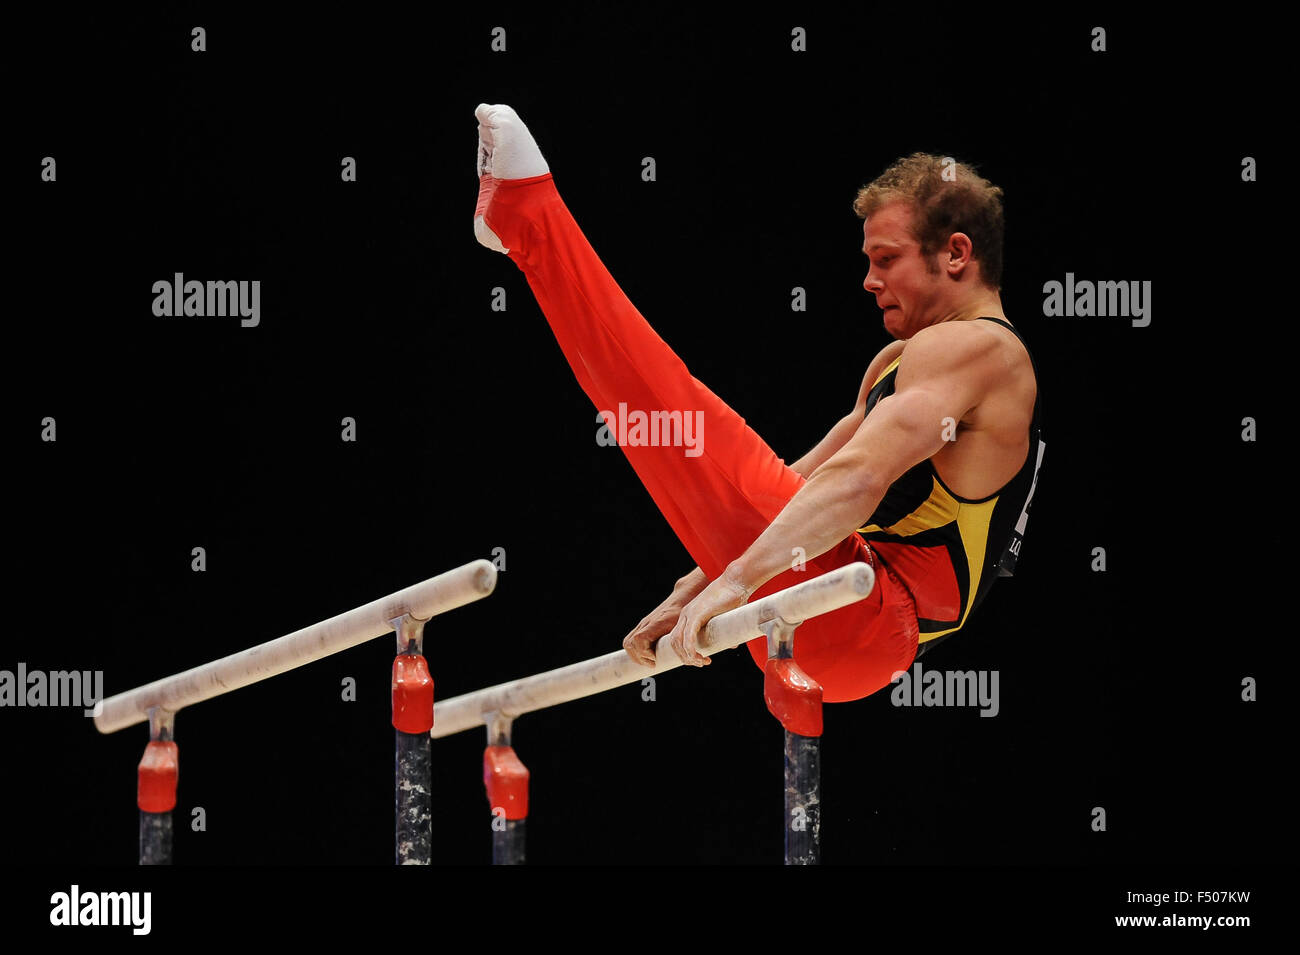 FABIAN HAMBUECHEN from Germany competes on the parallel bars during the preliminary round of the 2015 World Gymnastics - Stock Image